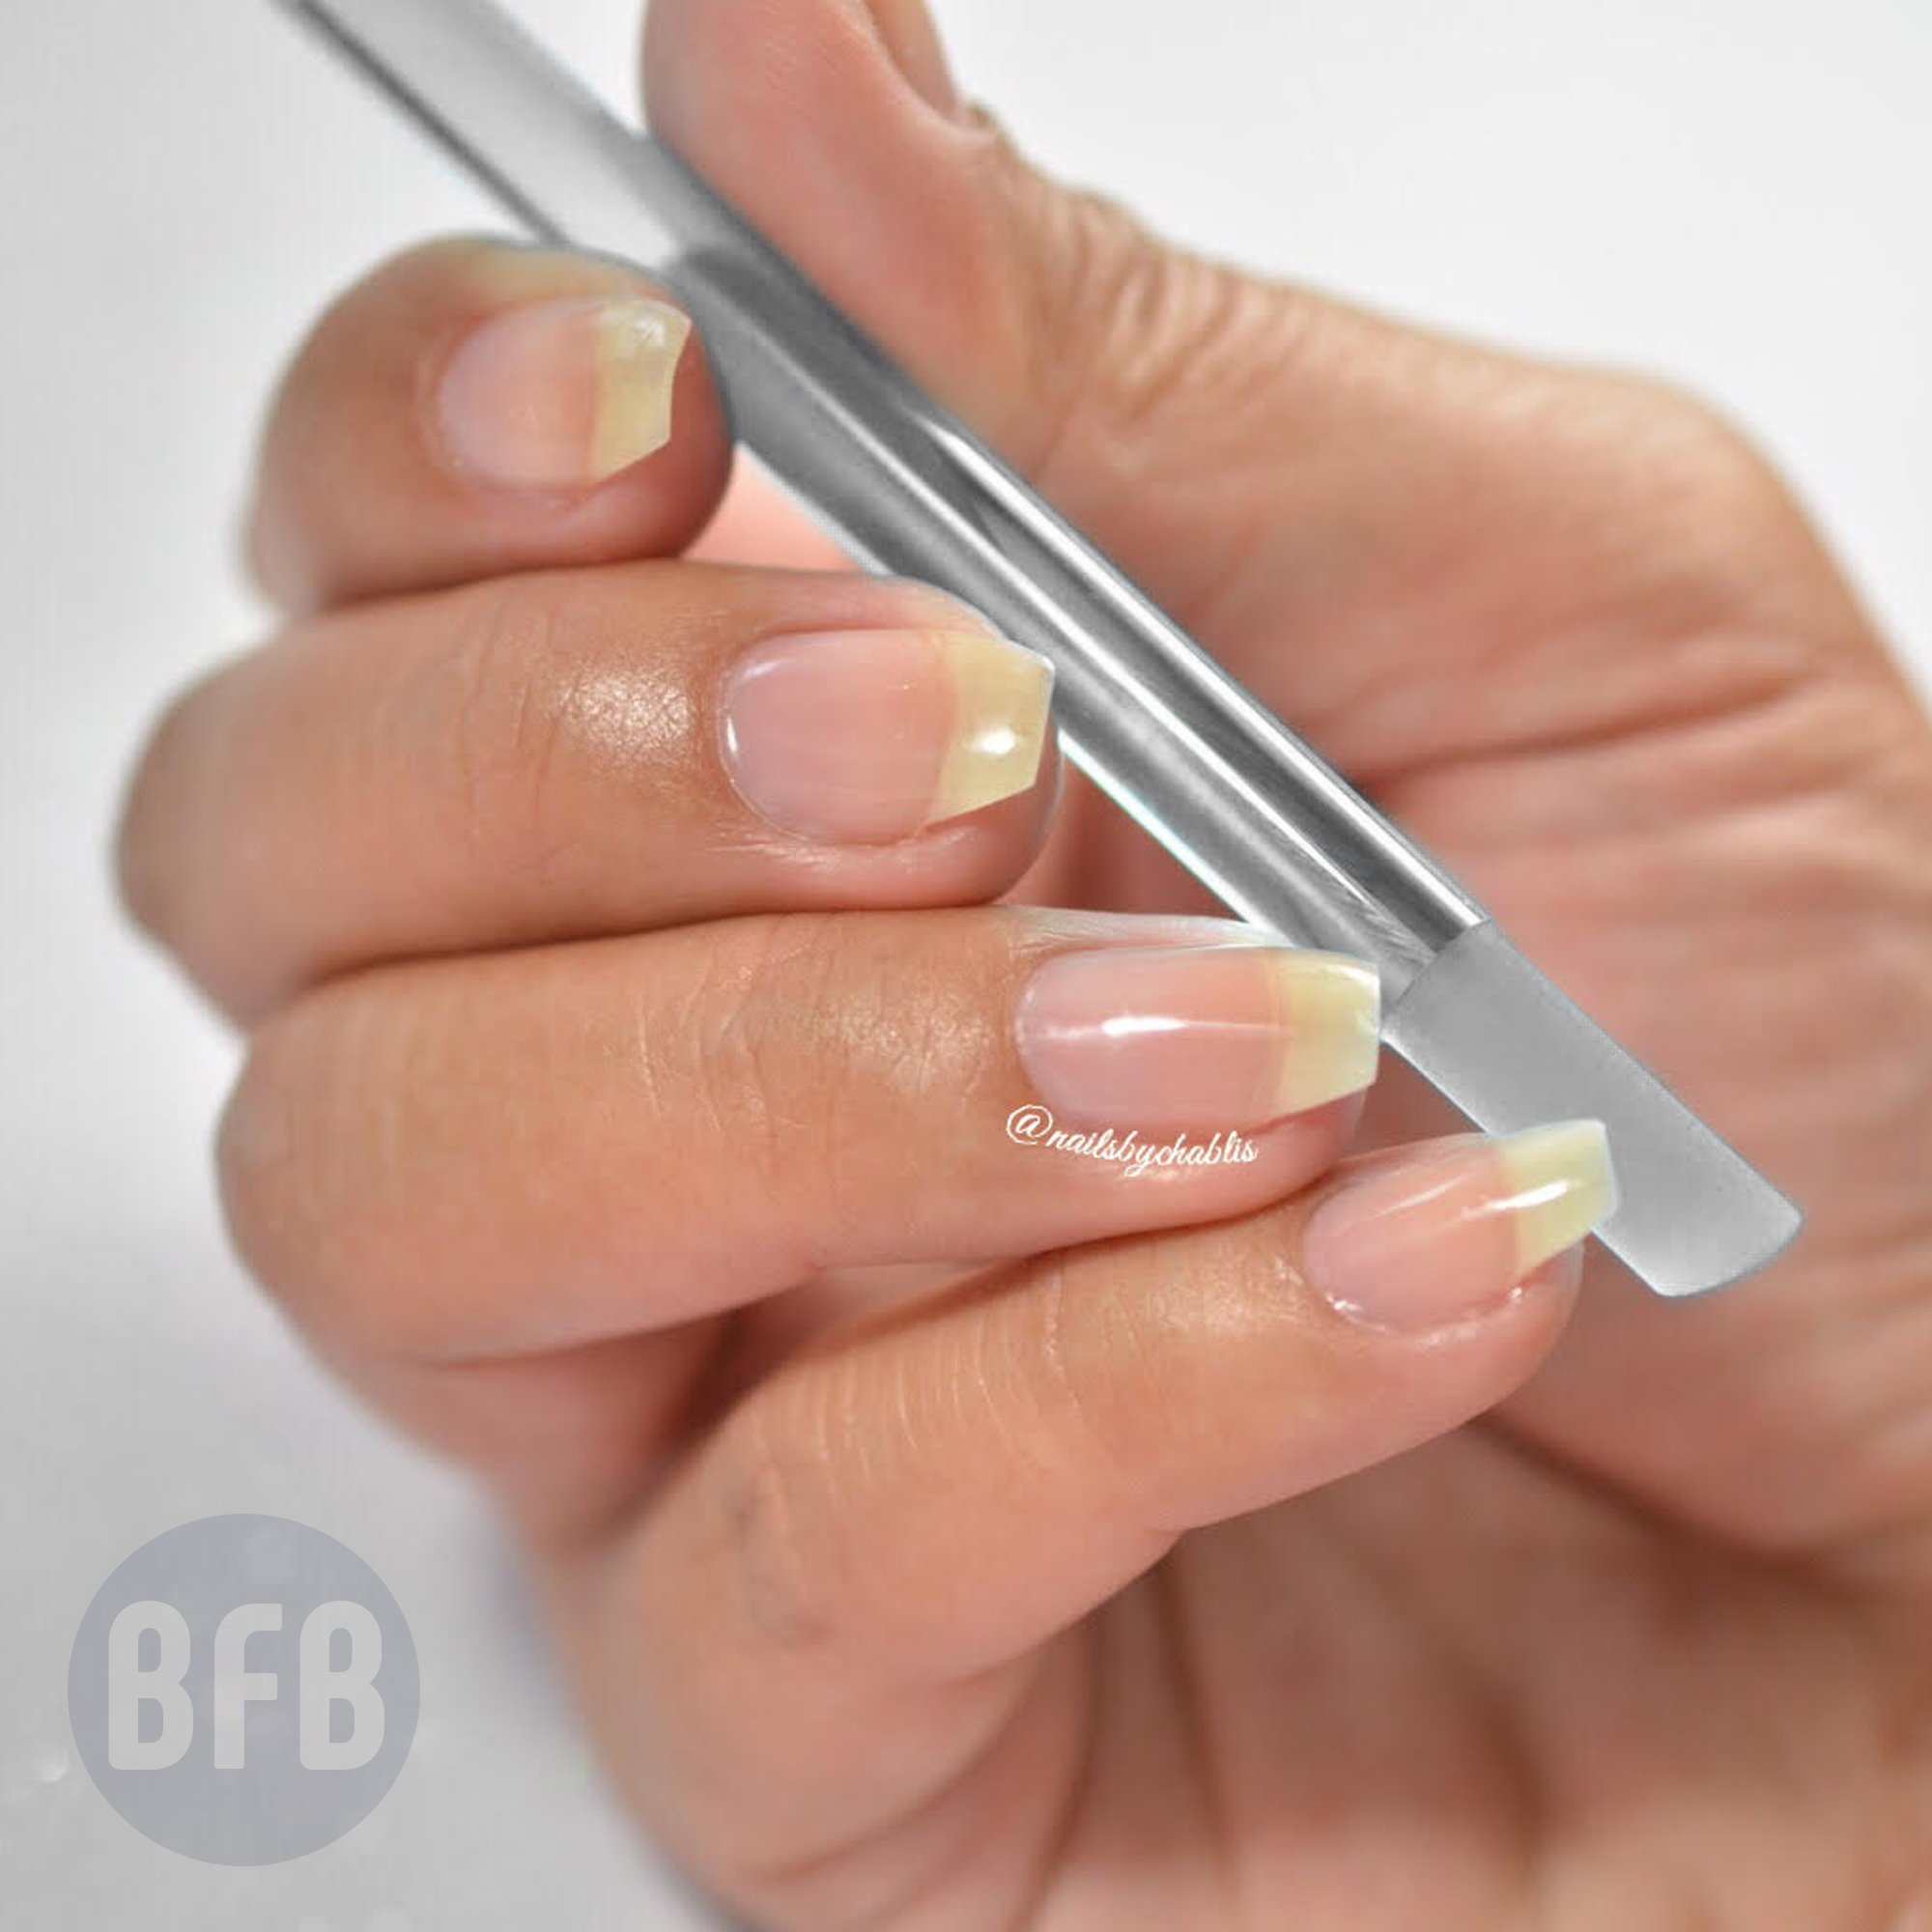 Manicure Tools, Cuticle Trimmer Glass Nail File Set, Nail Care by Bona Fide Beauty, Made in the Czech Republic by Bona Fide Beauty (Image #8)